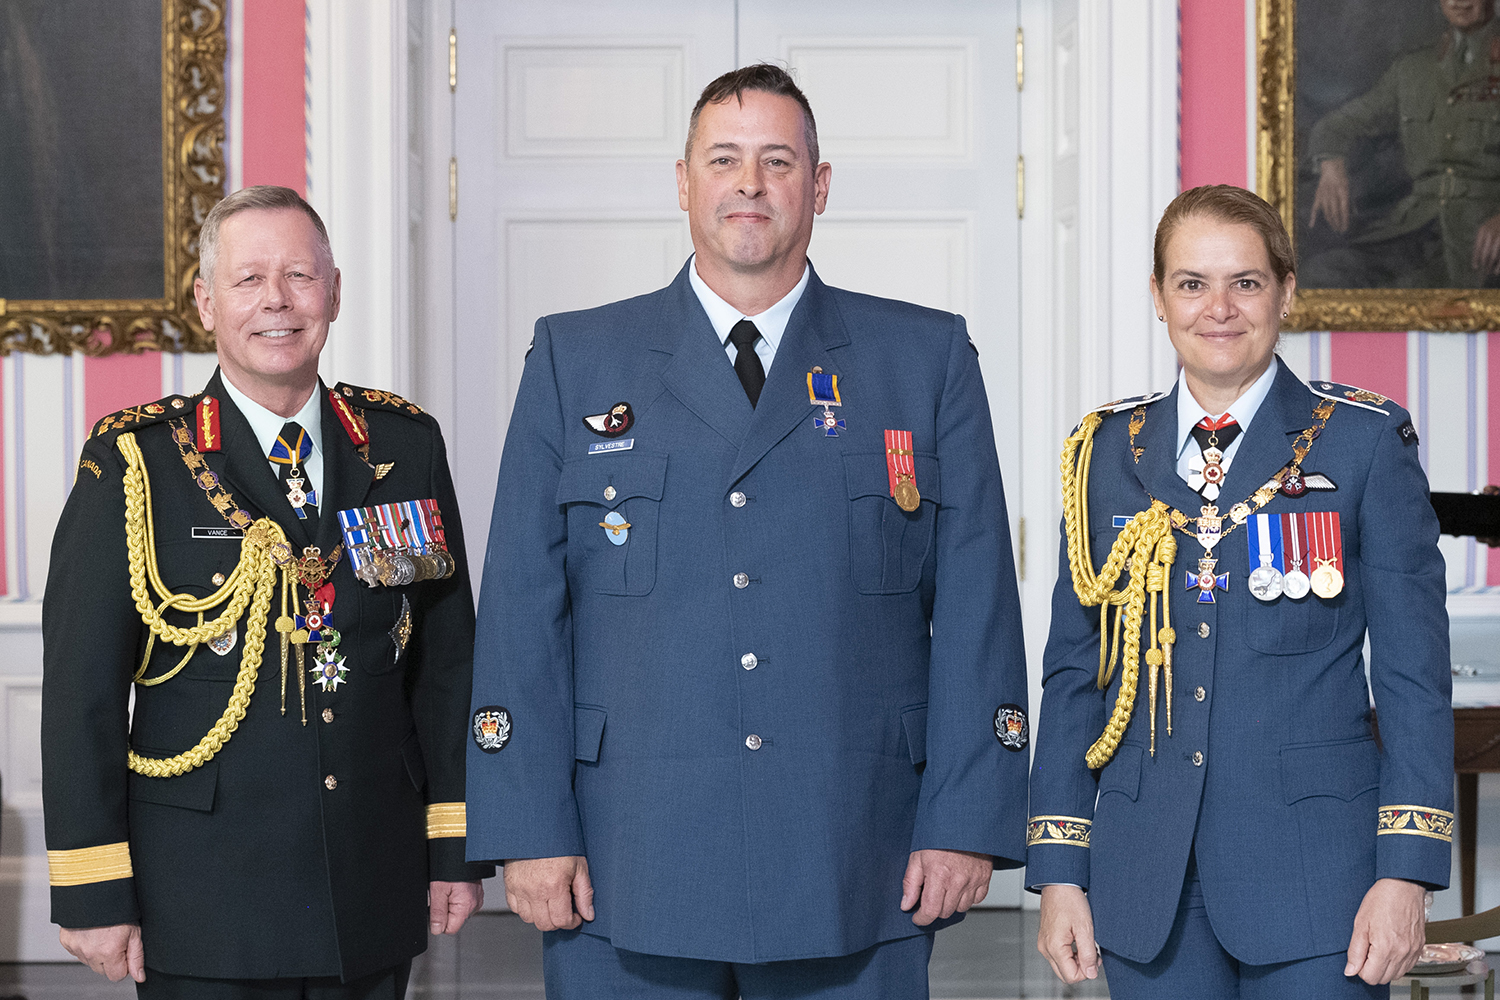 Master Warrant Officer Martin Sylvestre, M.M.M., C.D. stands with Governor-General Julie Payette and Chief of the Defence Staff General Jonathan Vance after receiving the Member insignia of the Order of Military Merit from the Governor General. PHOTO: Sergeant Johanie Maheu, Rideau Hall, © OSGG, GG05-2019-0118-055